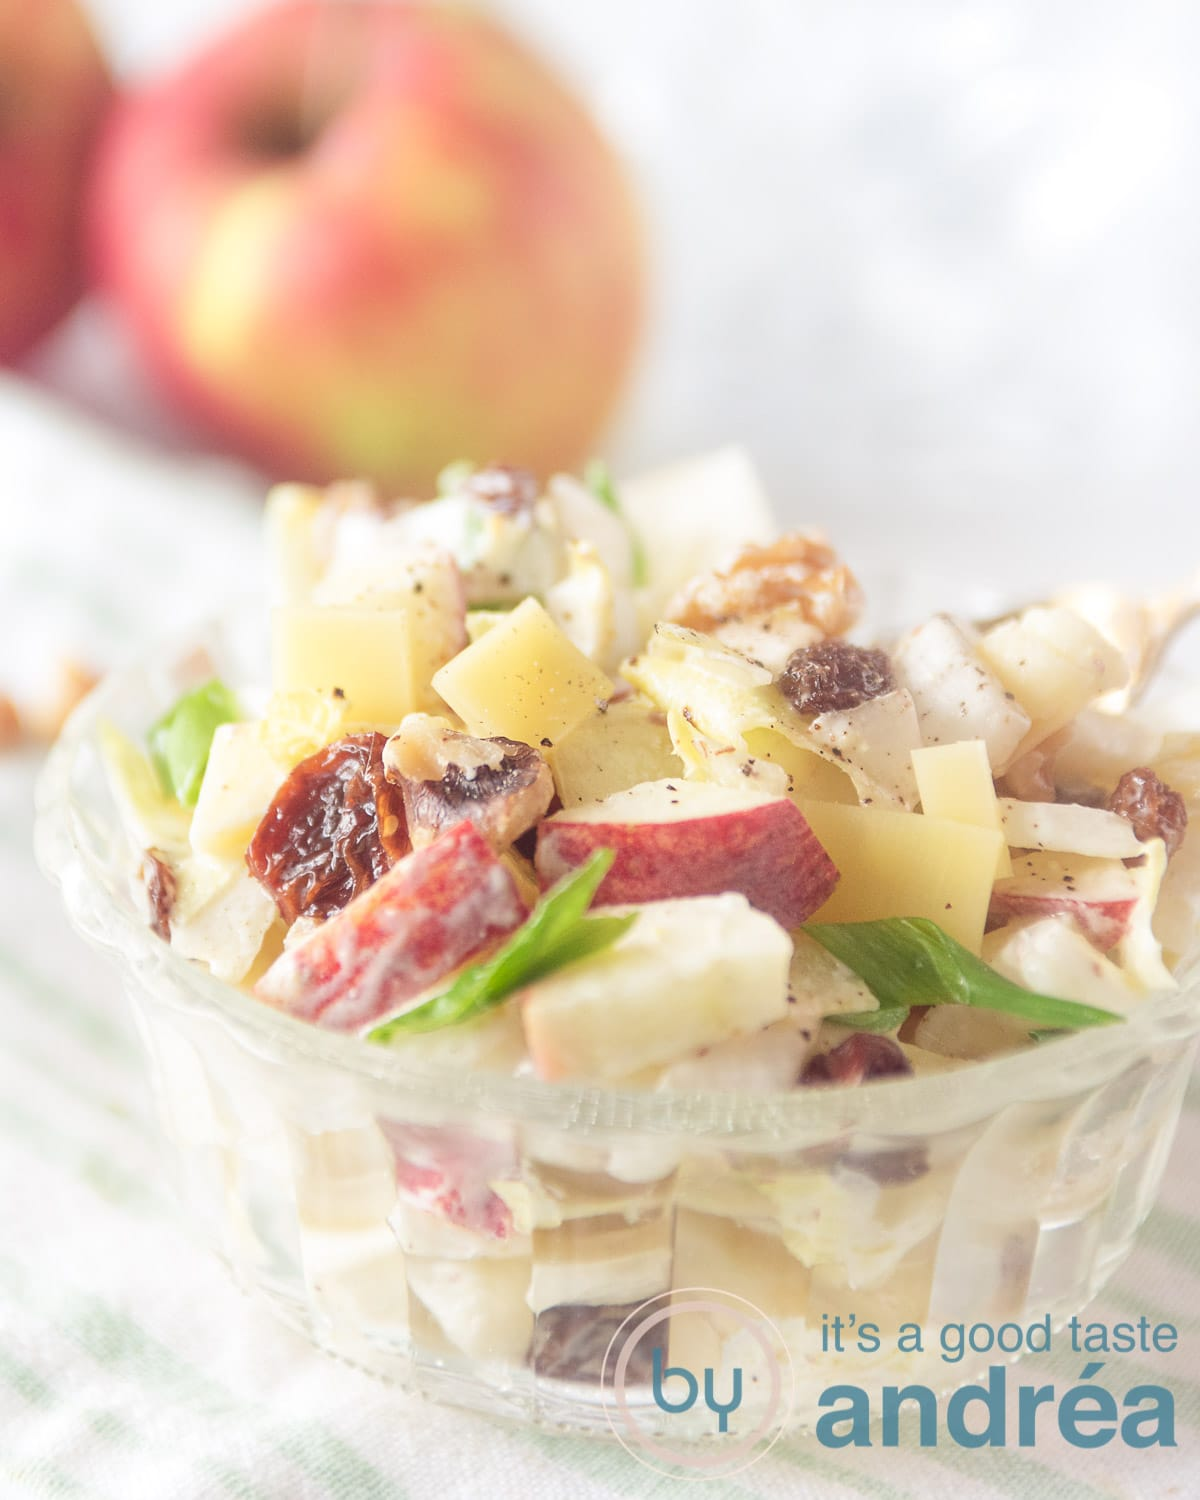 A bowl with brussels endive salad. Two apples in the background